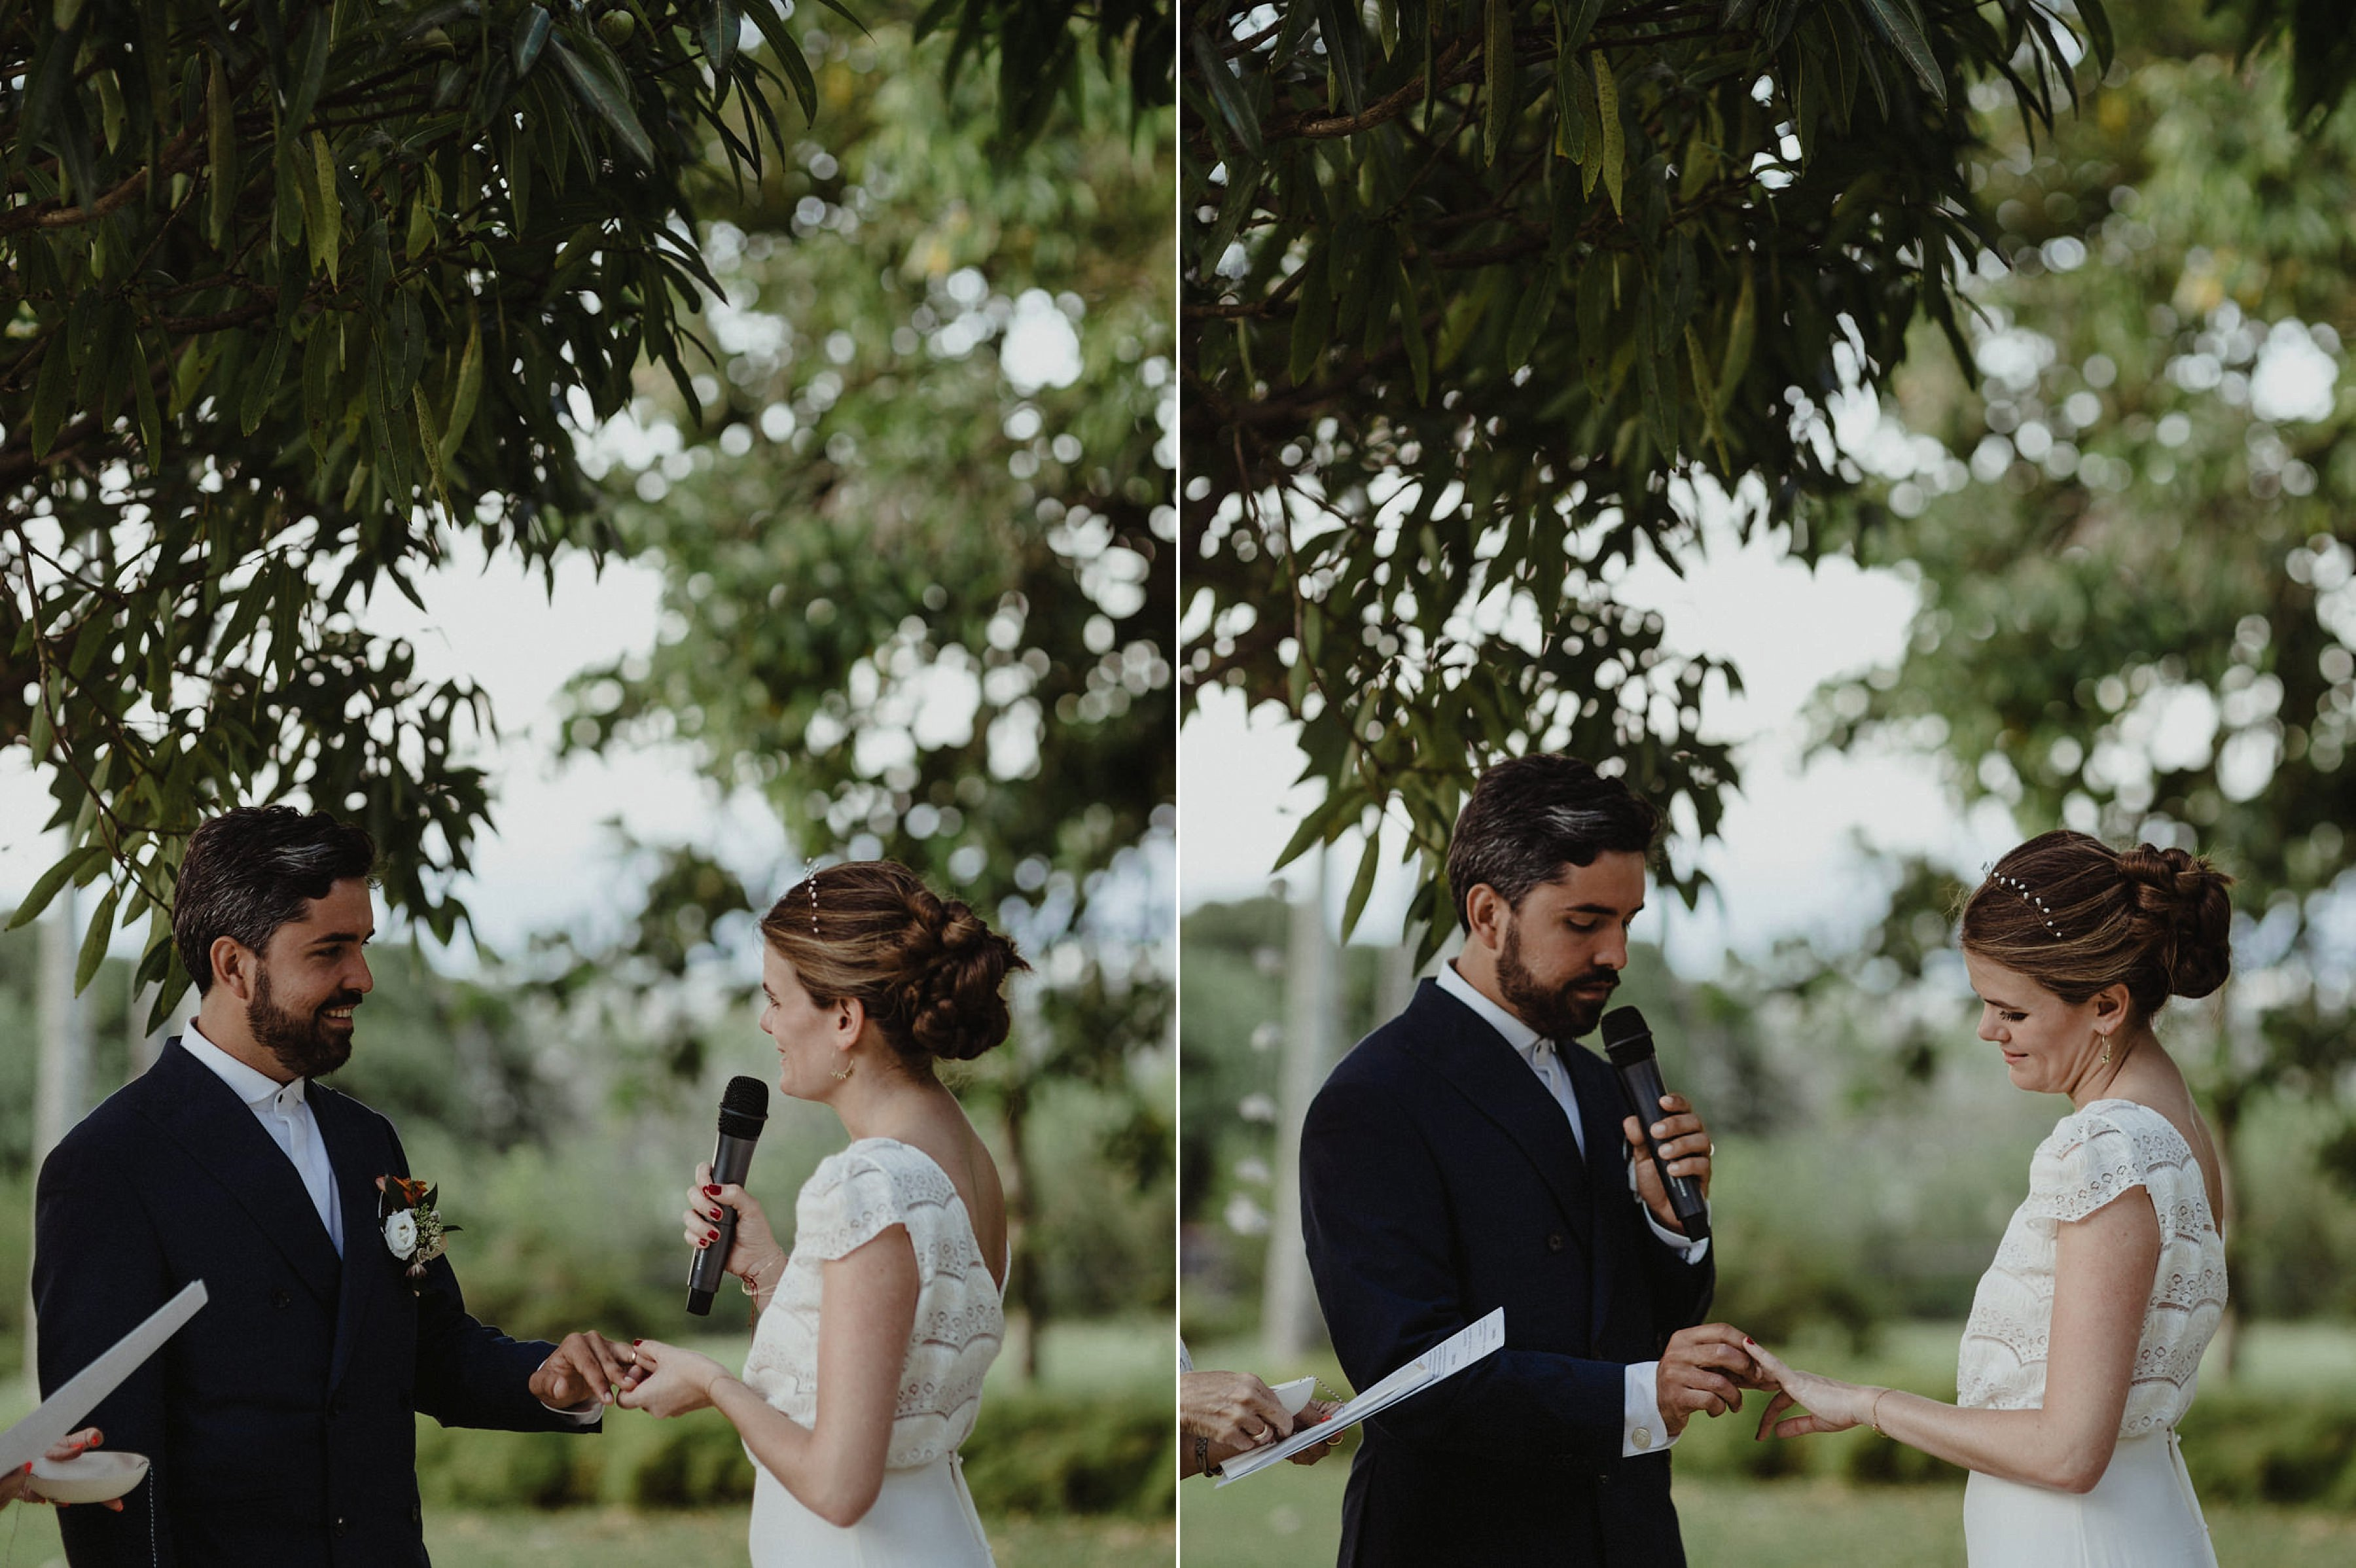 capyture-wedding-photographer-destination-nature_0822